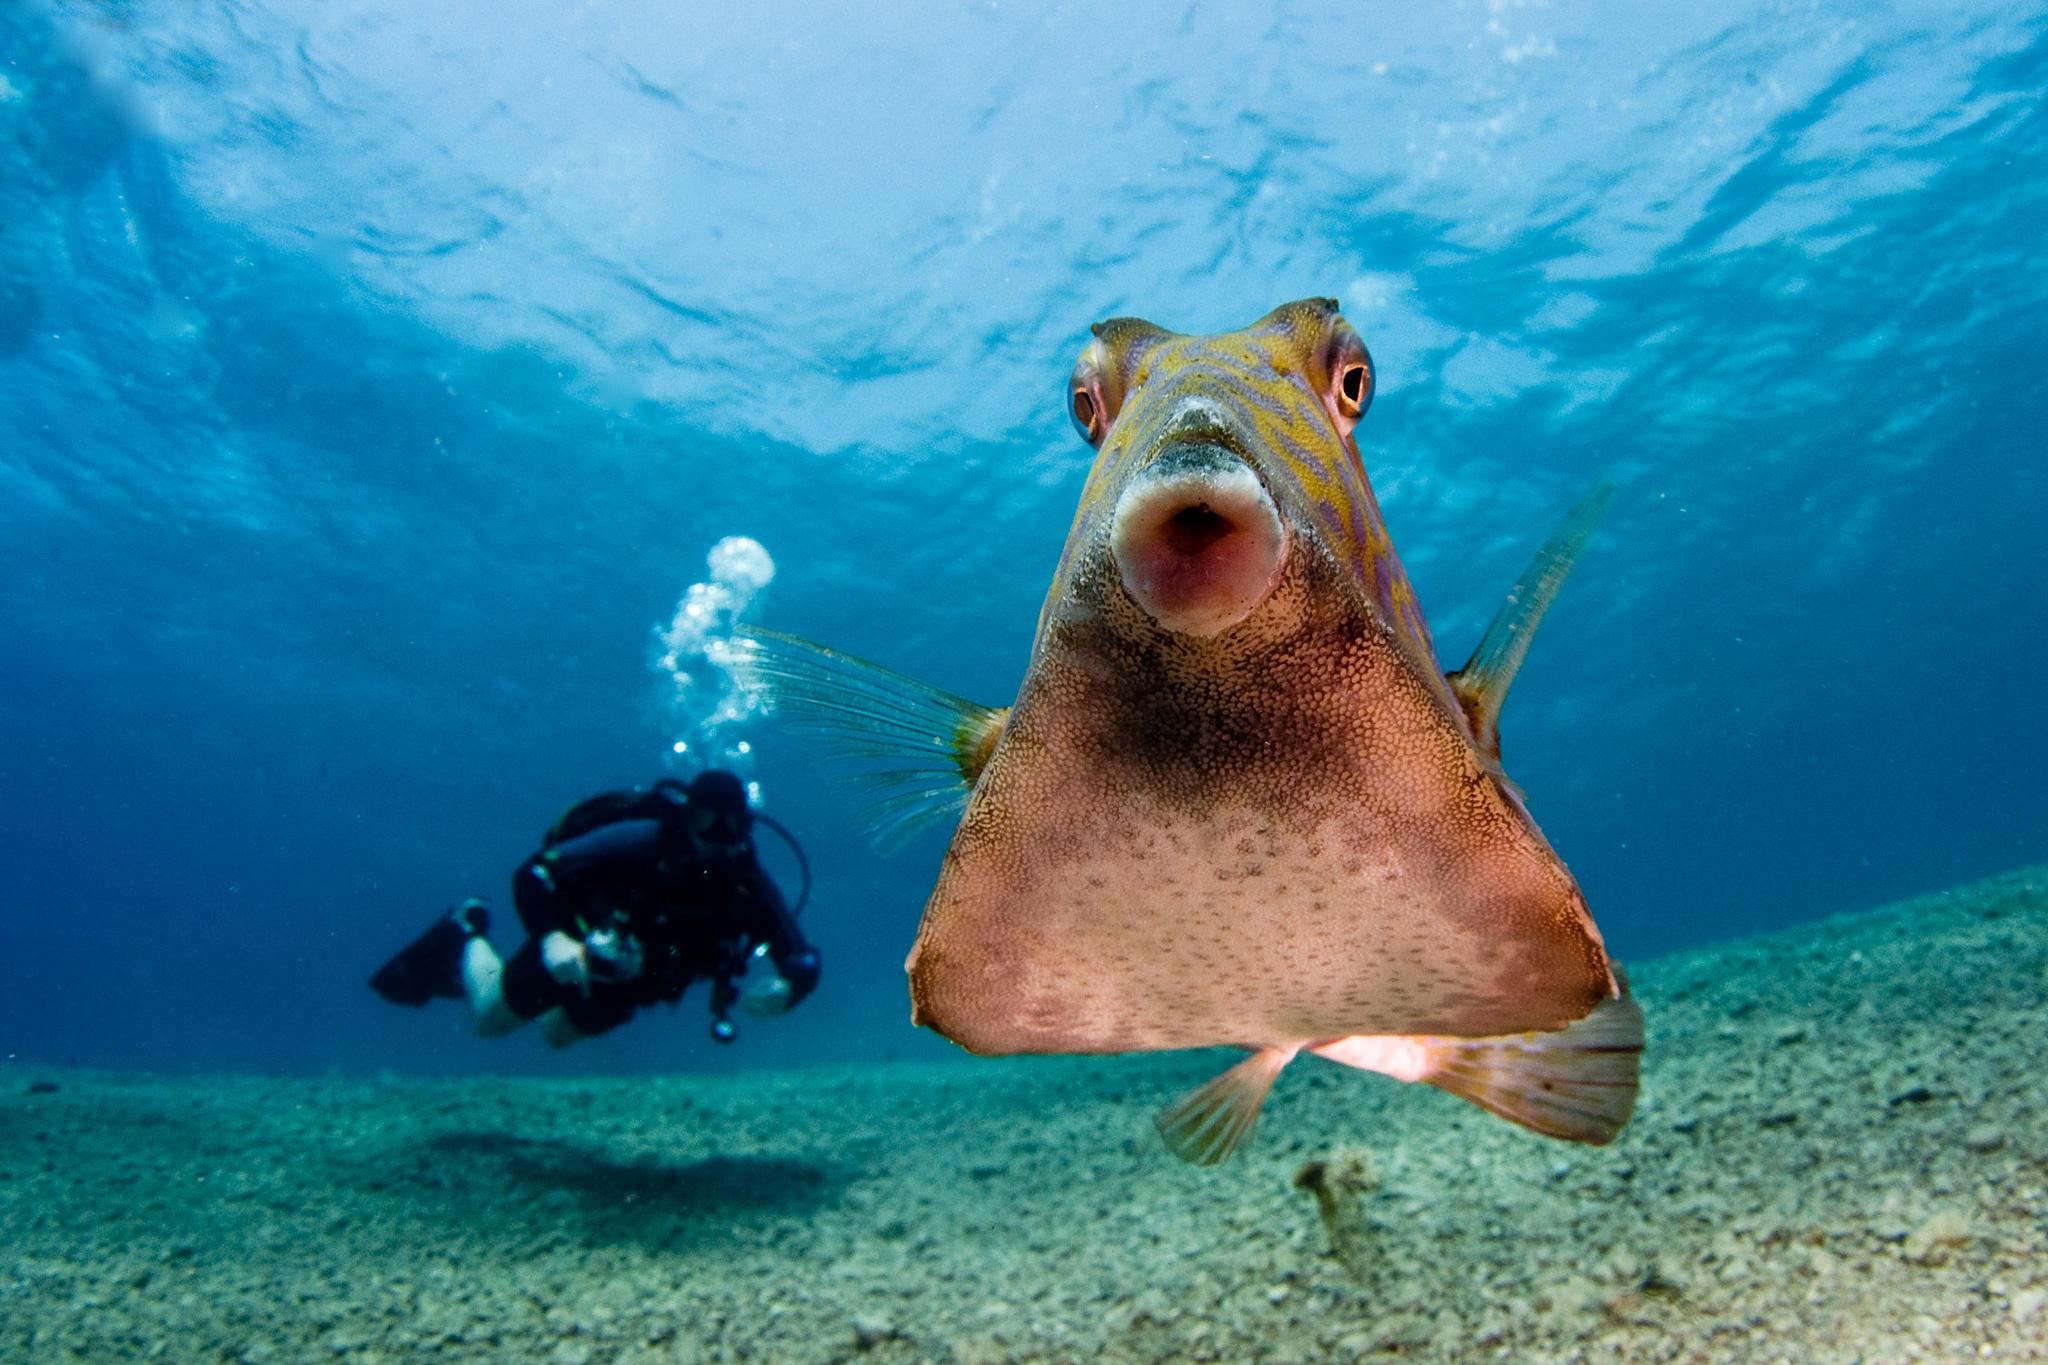 Trunk fish and a diver by Ilan Ben Tov